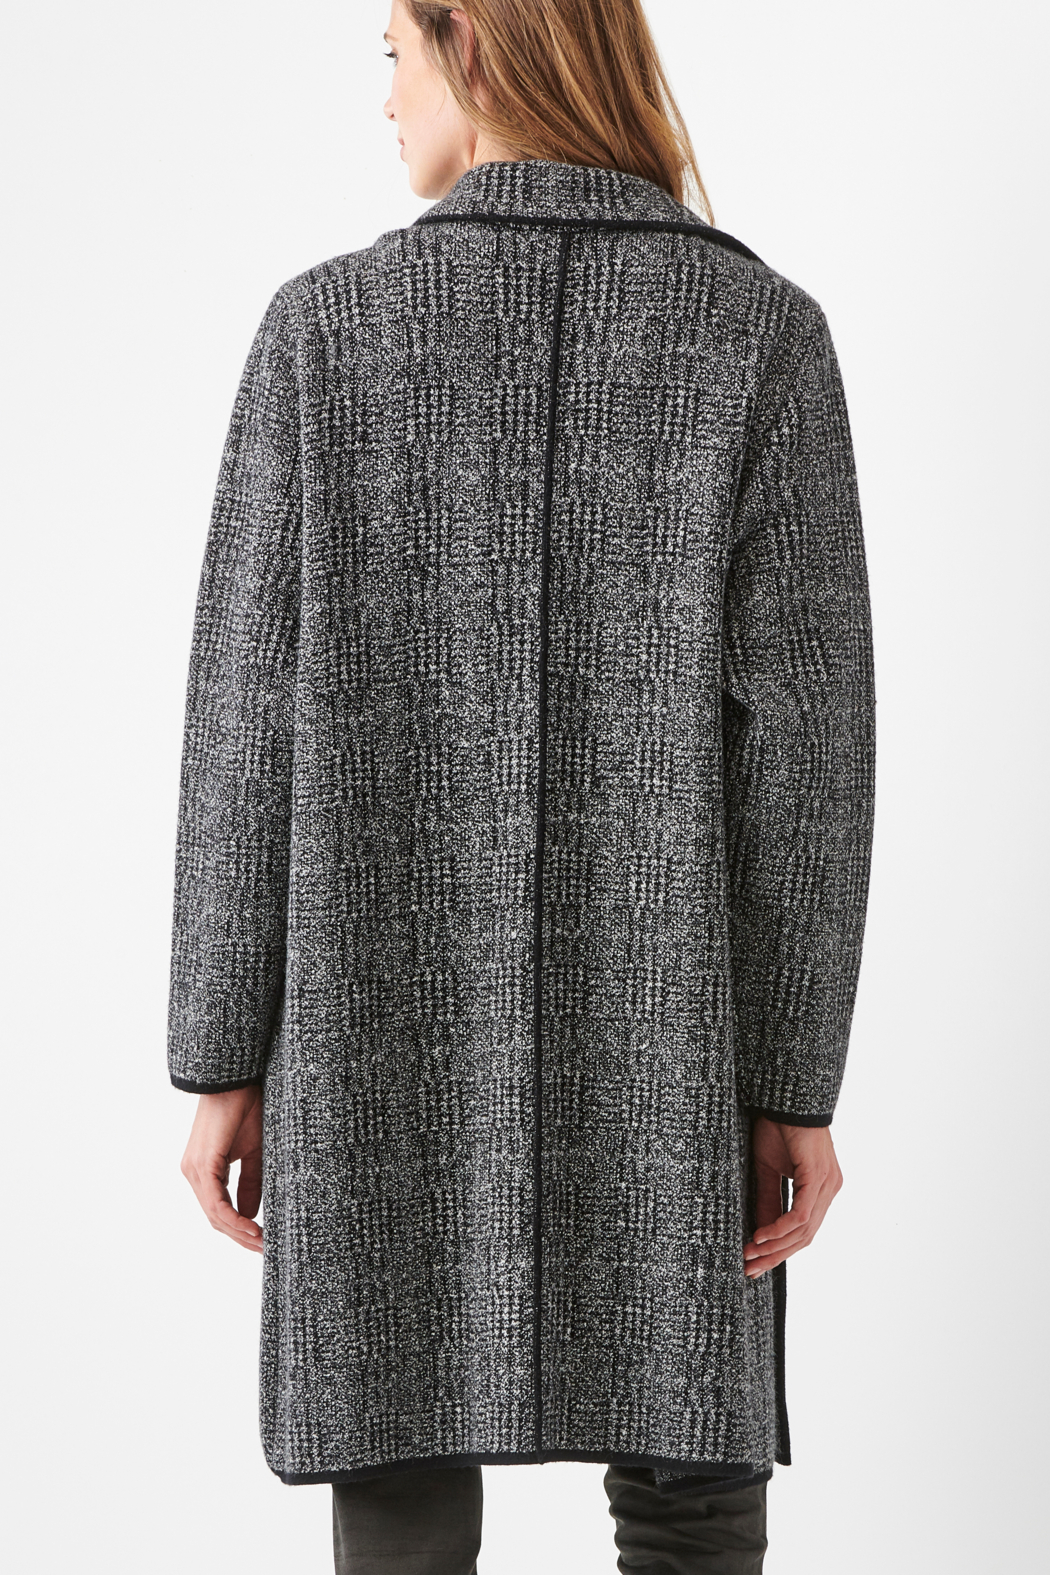 Charlie Paige  Classy Sweater Coat - Side Cropped Image